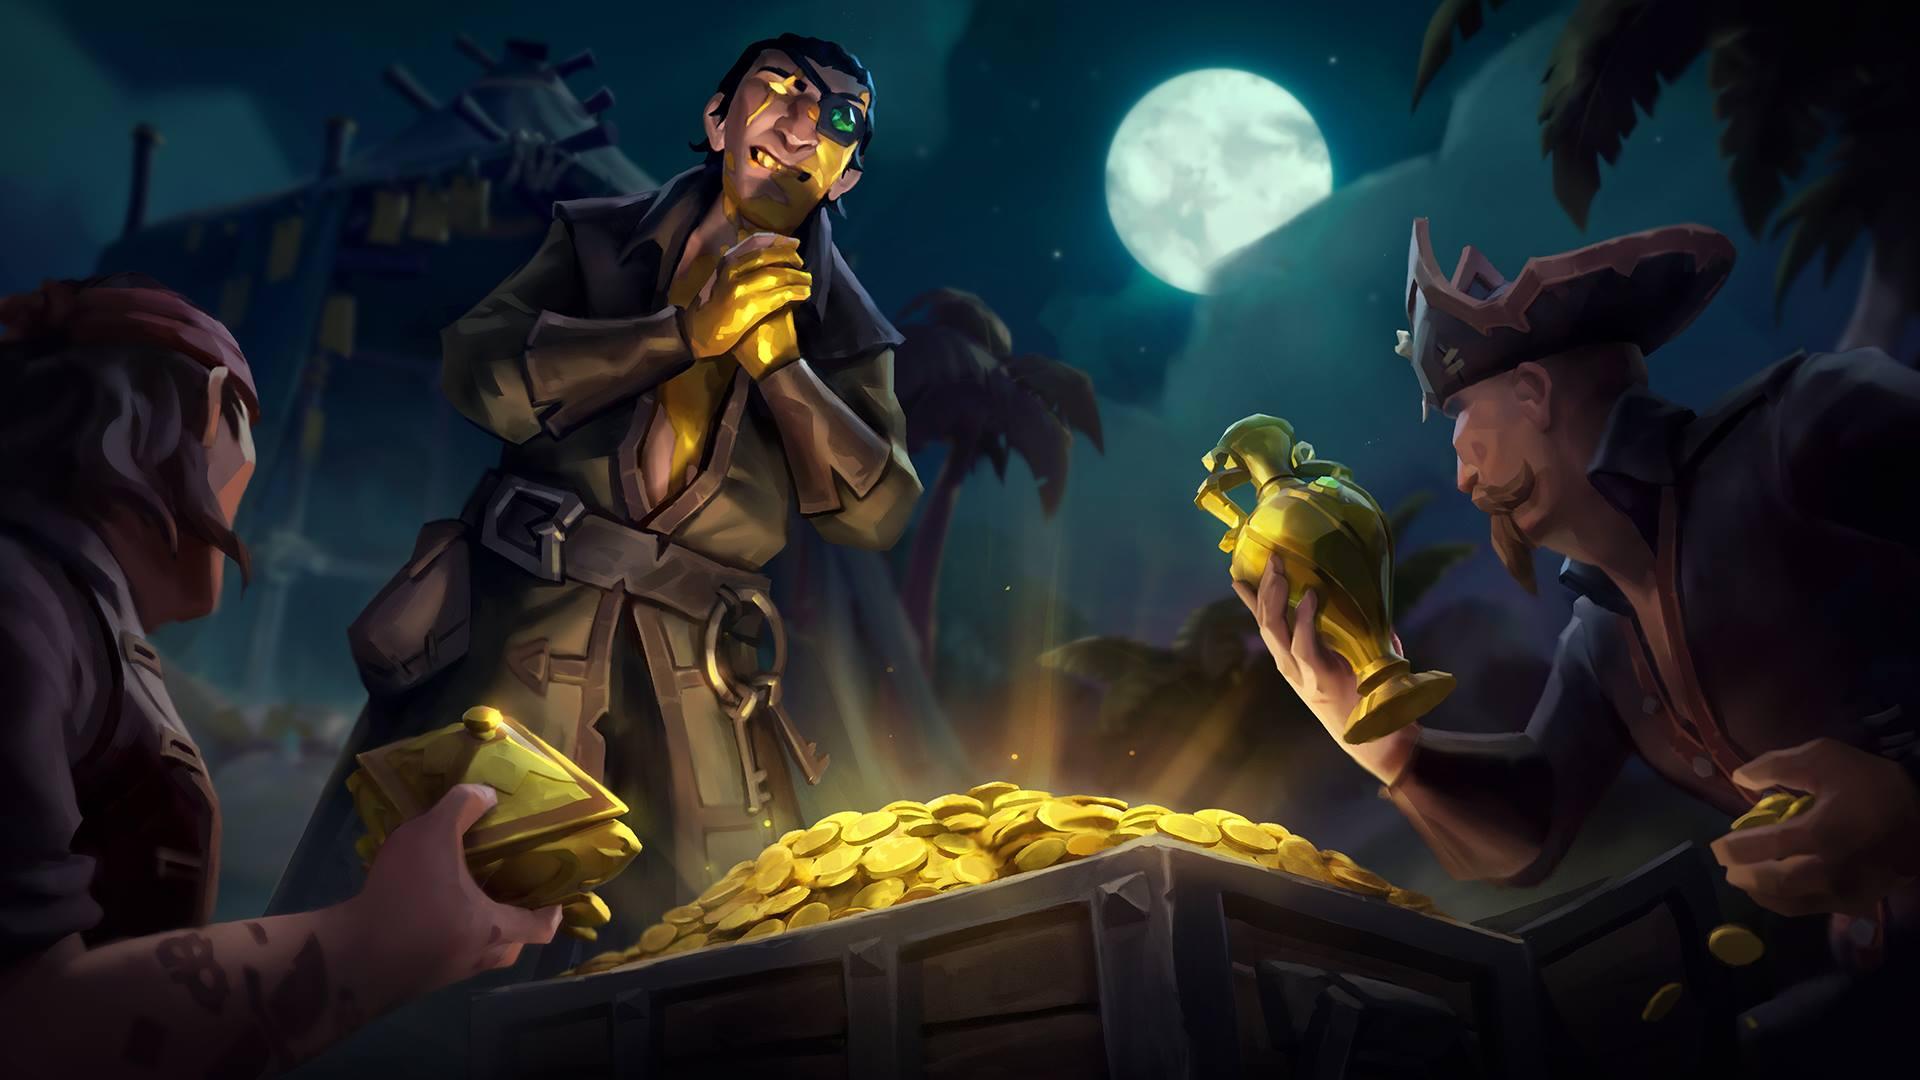 sea of thieves ships of fortune emissary system